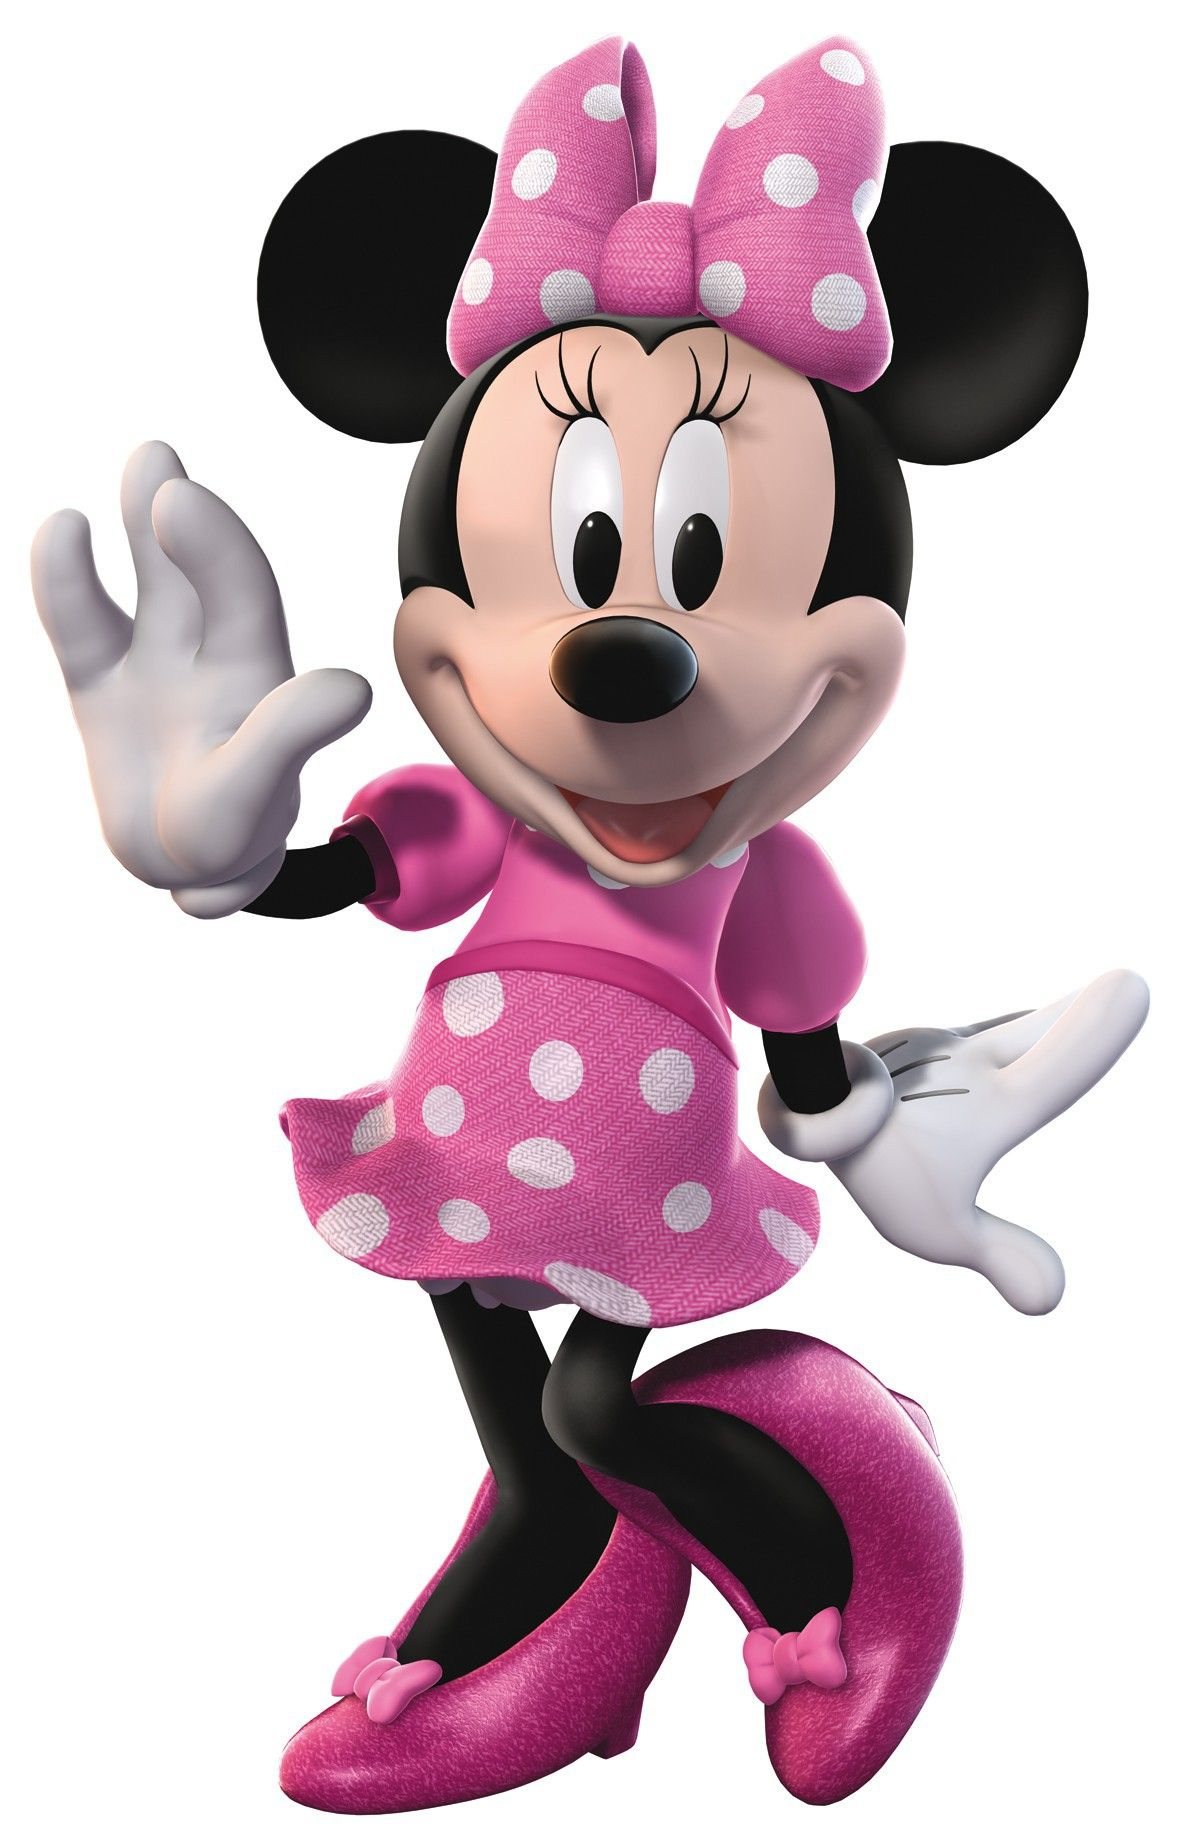 Minnie mouse love.